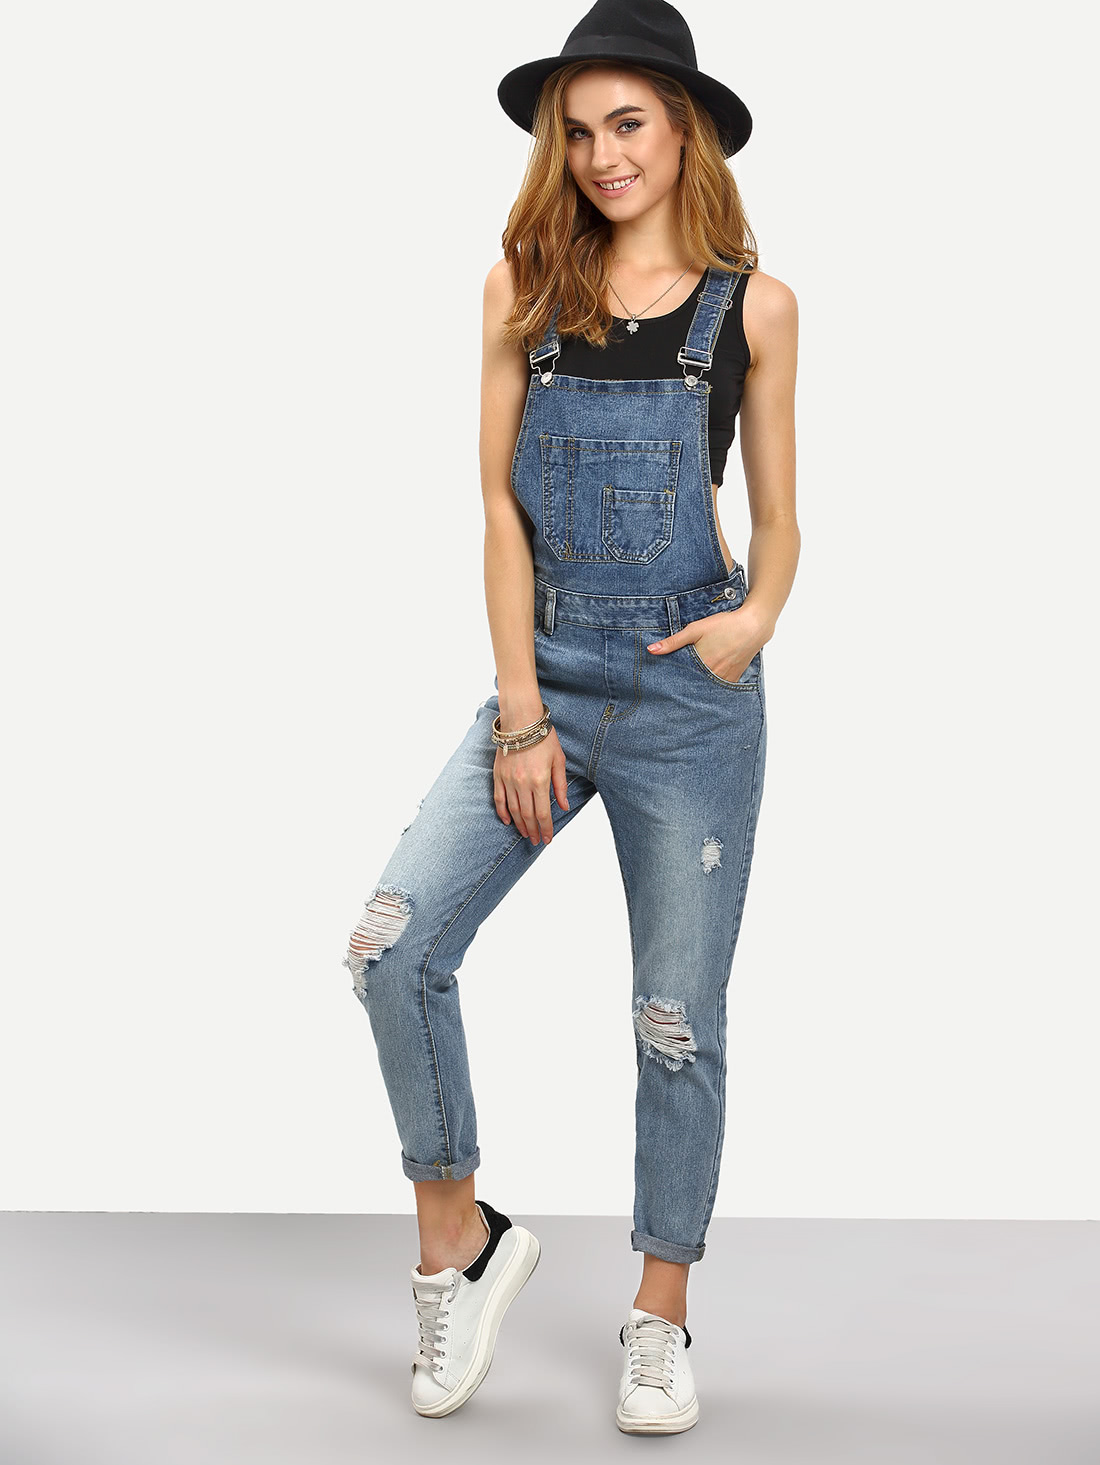 Denim Overalls, Overalls & Latzhose Outlet